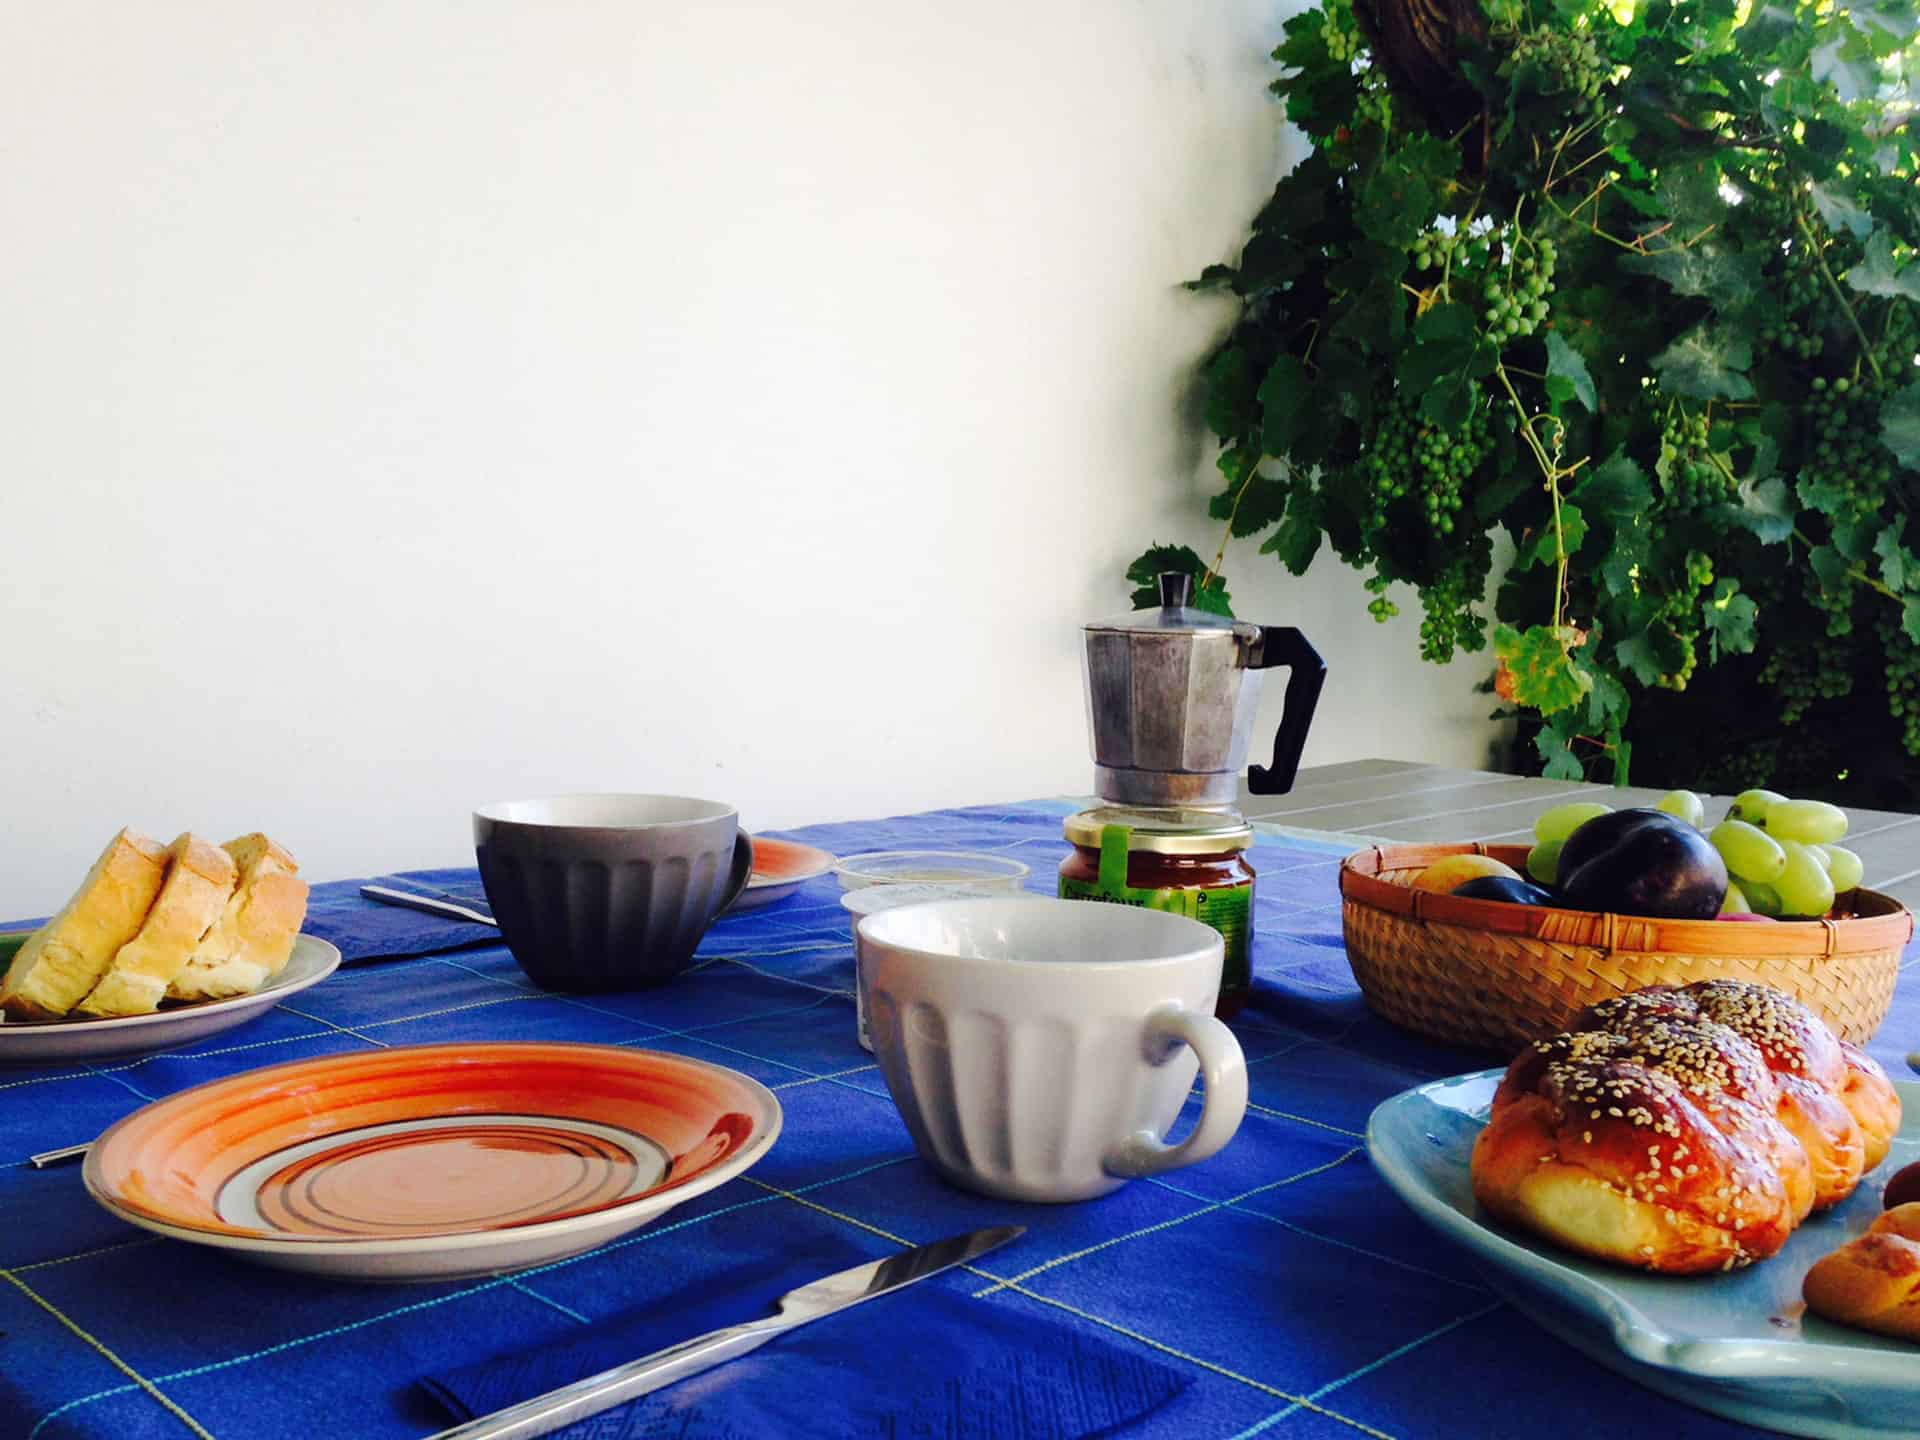 Home for rental in Greece - Greece home holidays tinos island - greek breakfast